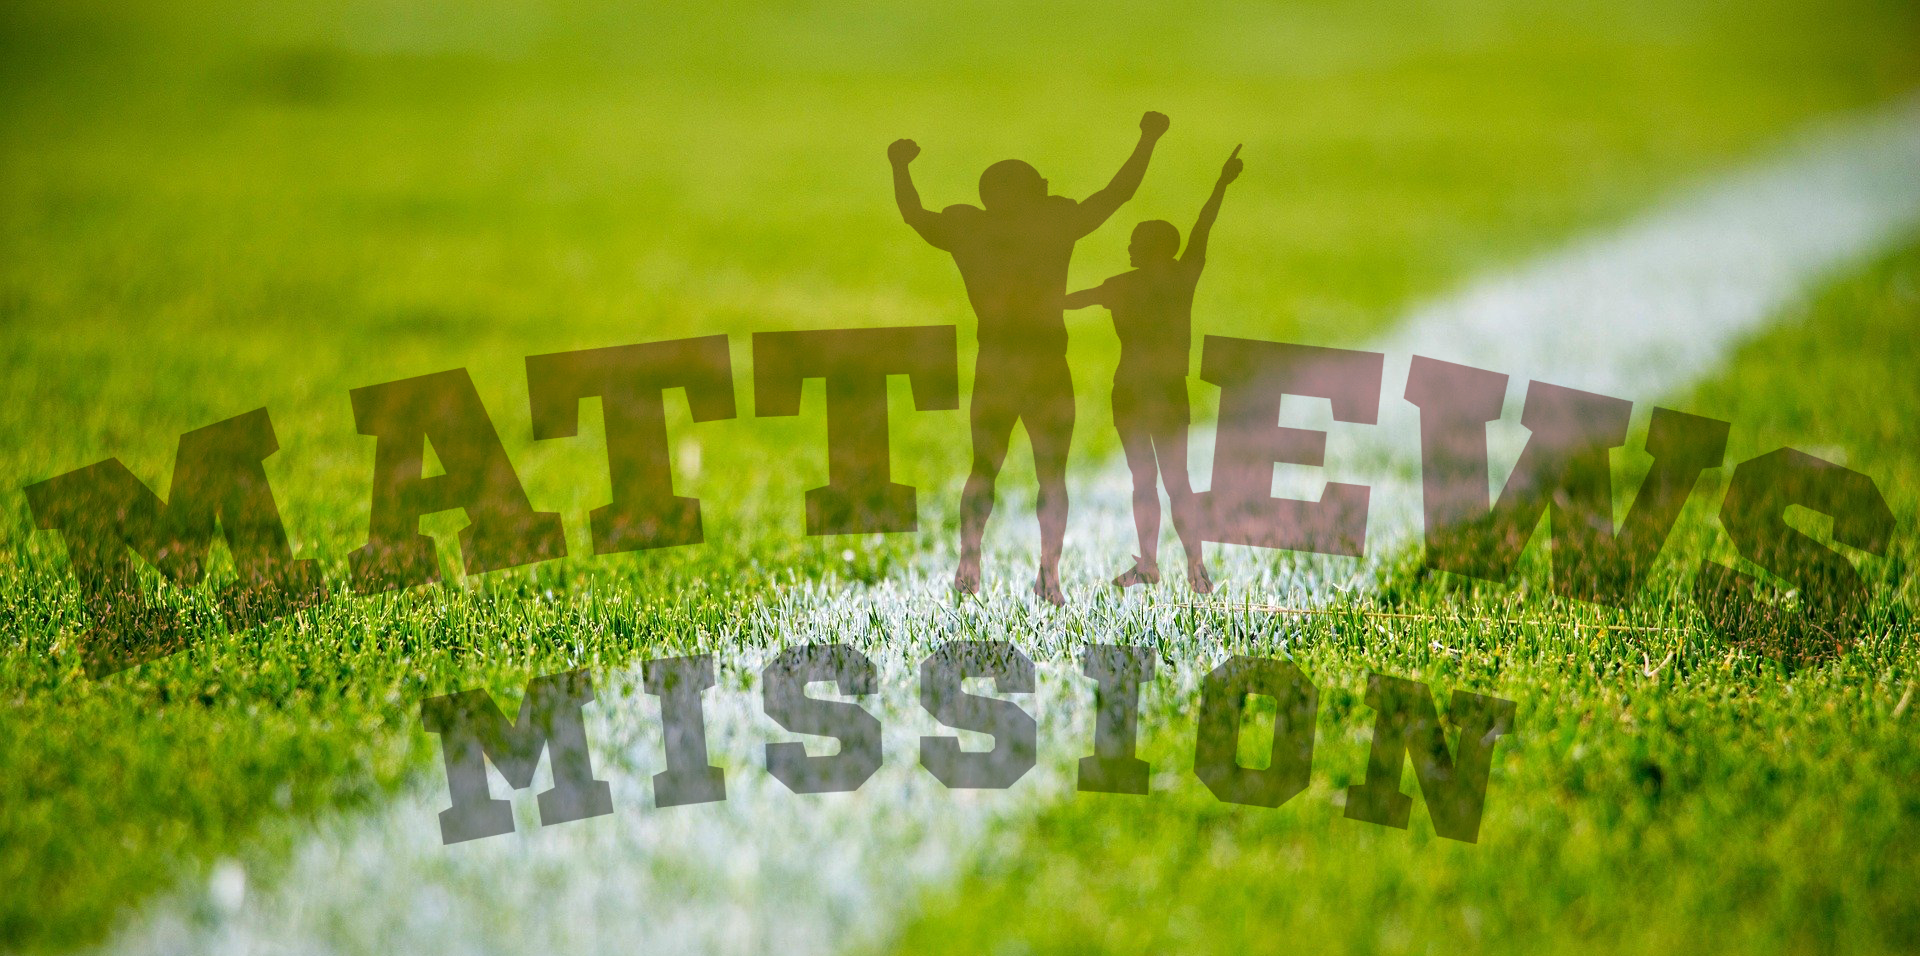 A Mission for the Matthews is Making a Difference in Their Communities